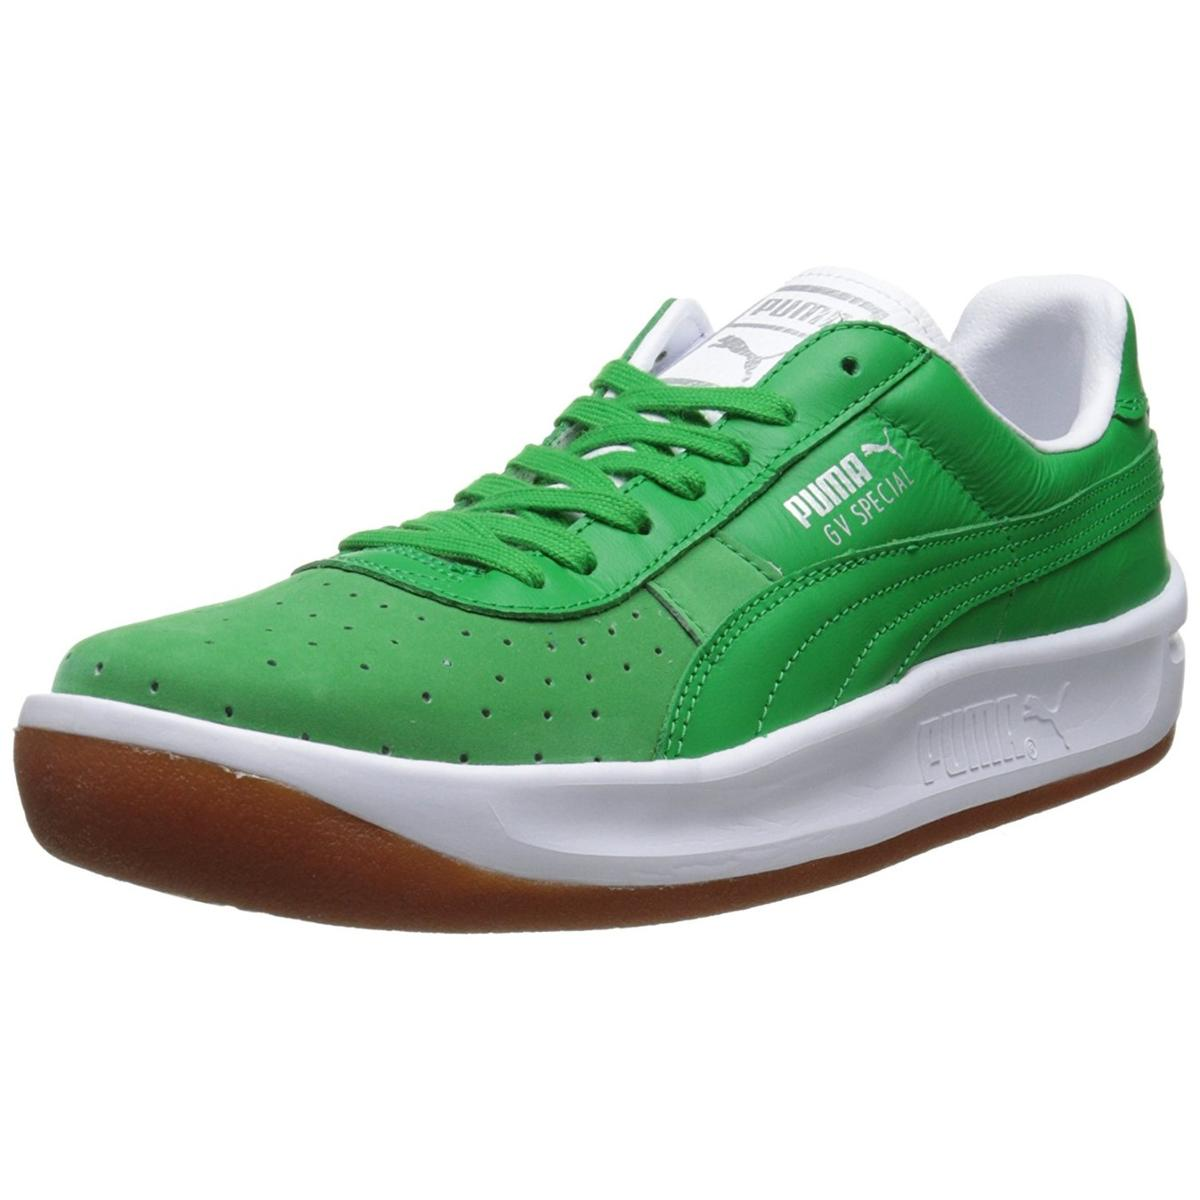 best sneakers 2dd4e d17e4 Puma GV Special Basic S Mens Green/White Sneakers